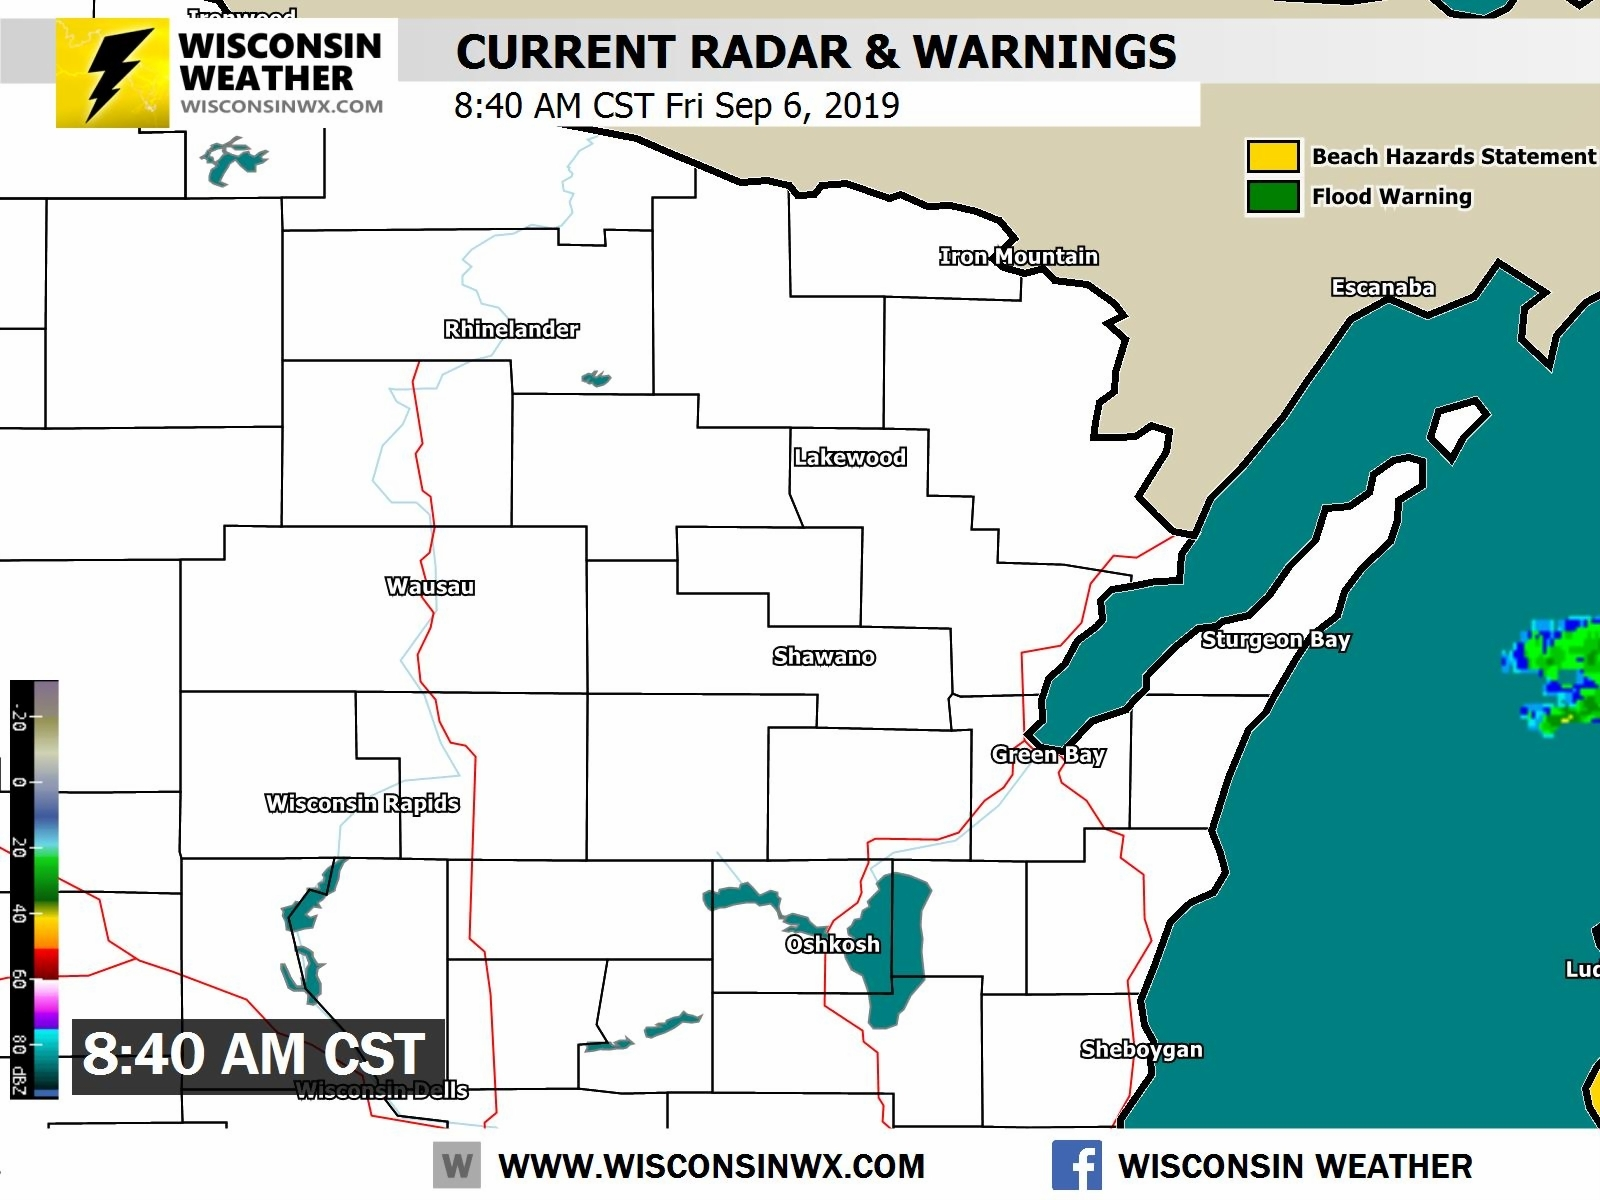 Hobart   WI  54155  7 Day Weather Forecast   Wisconsin Weather Current Radar